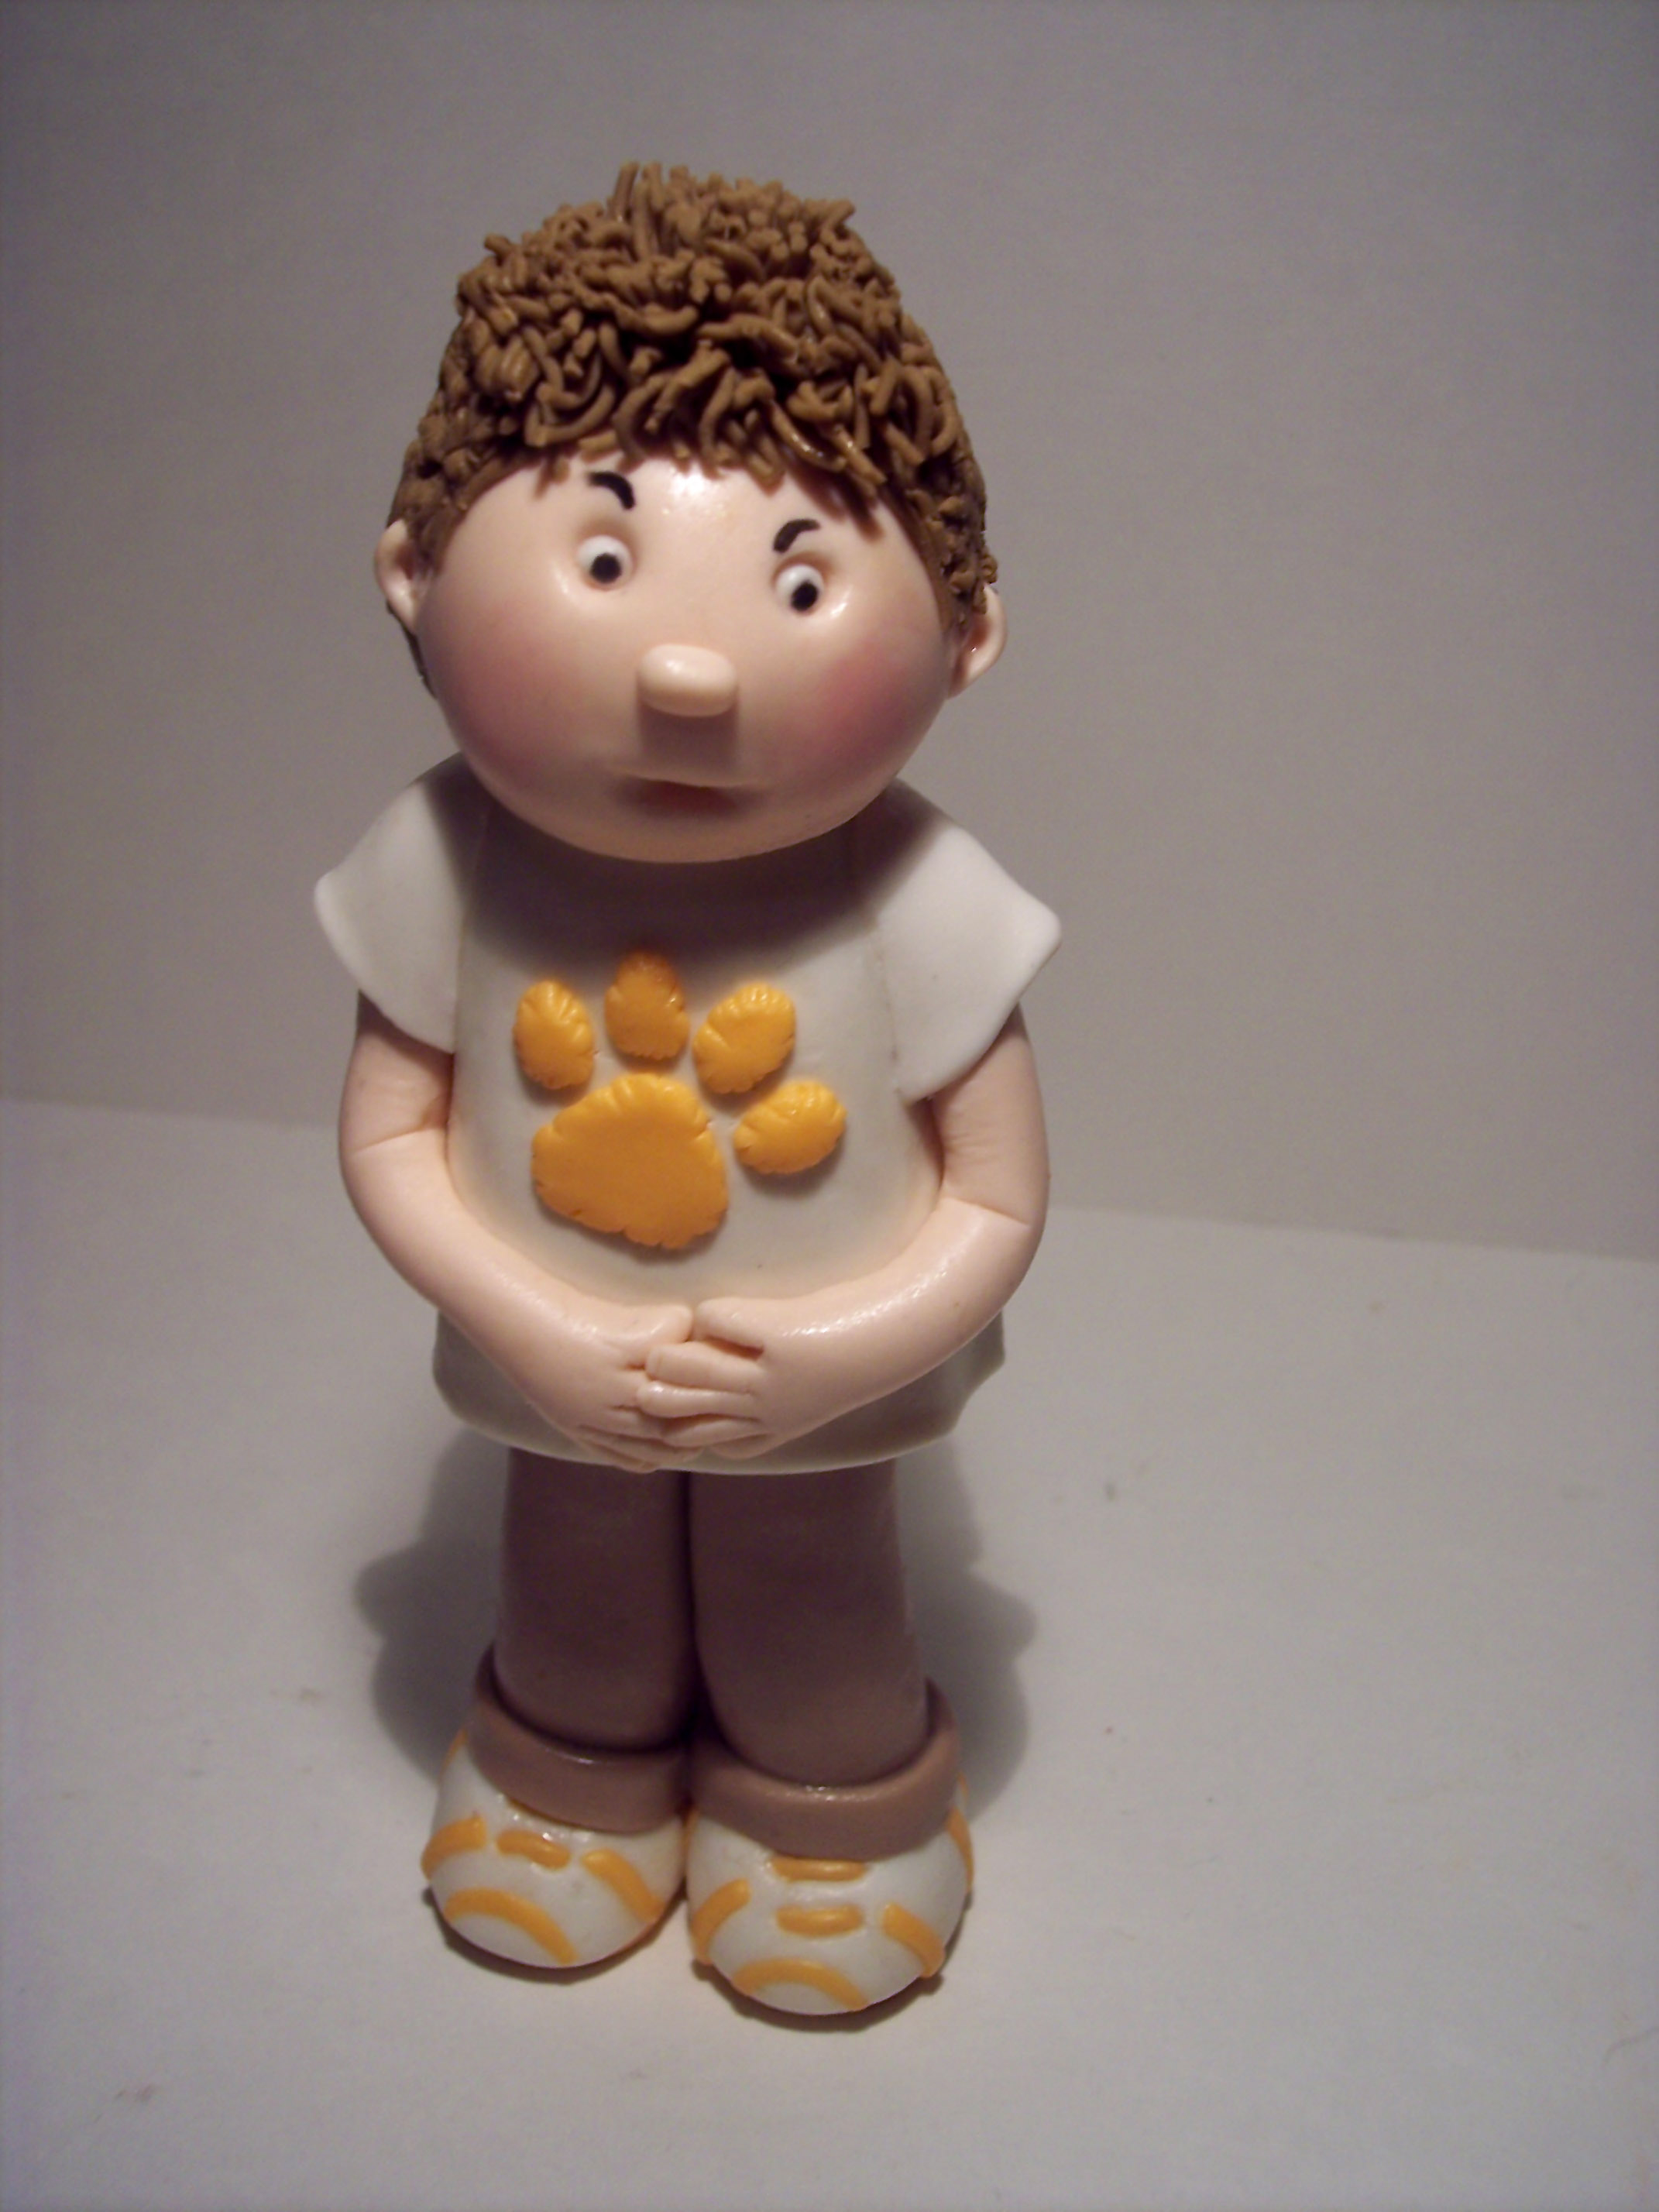 how to make fondant figures for cakes